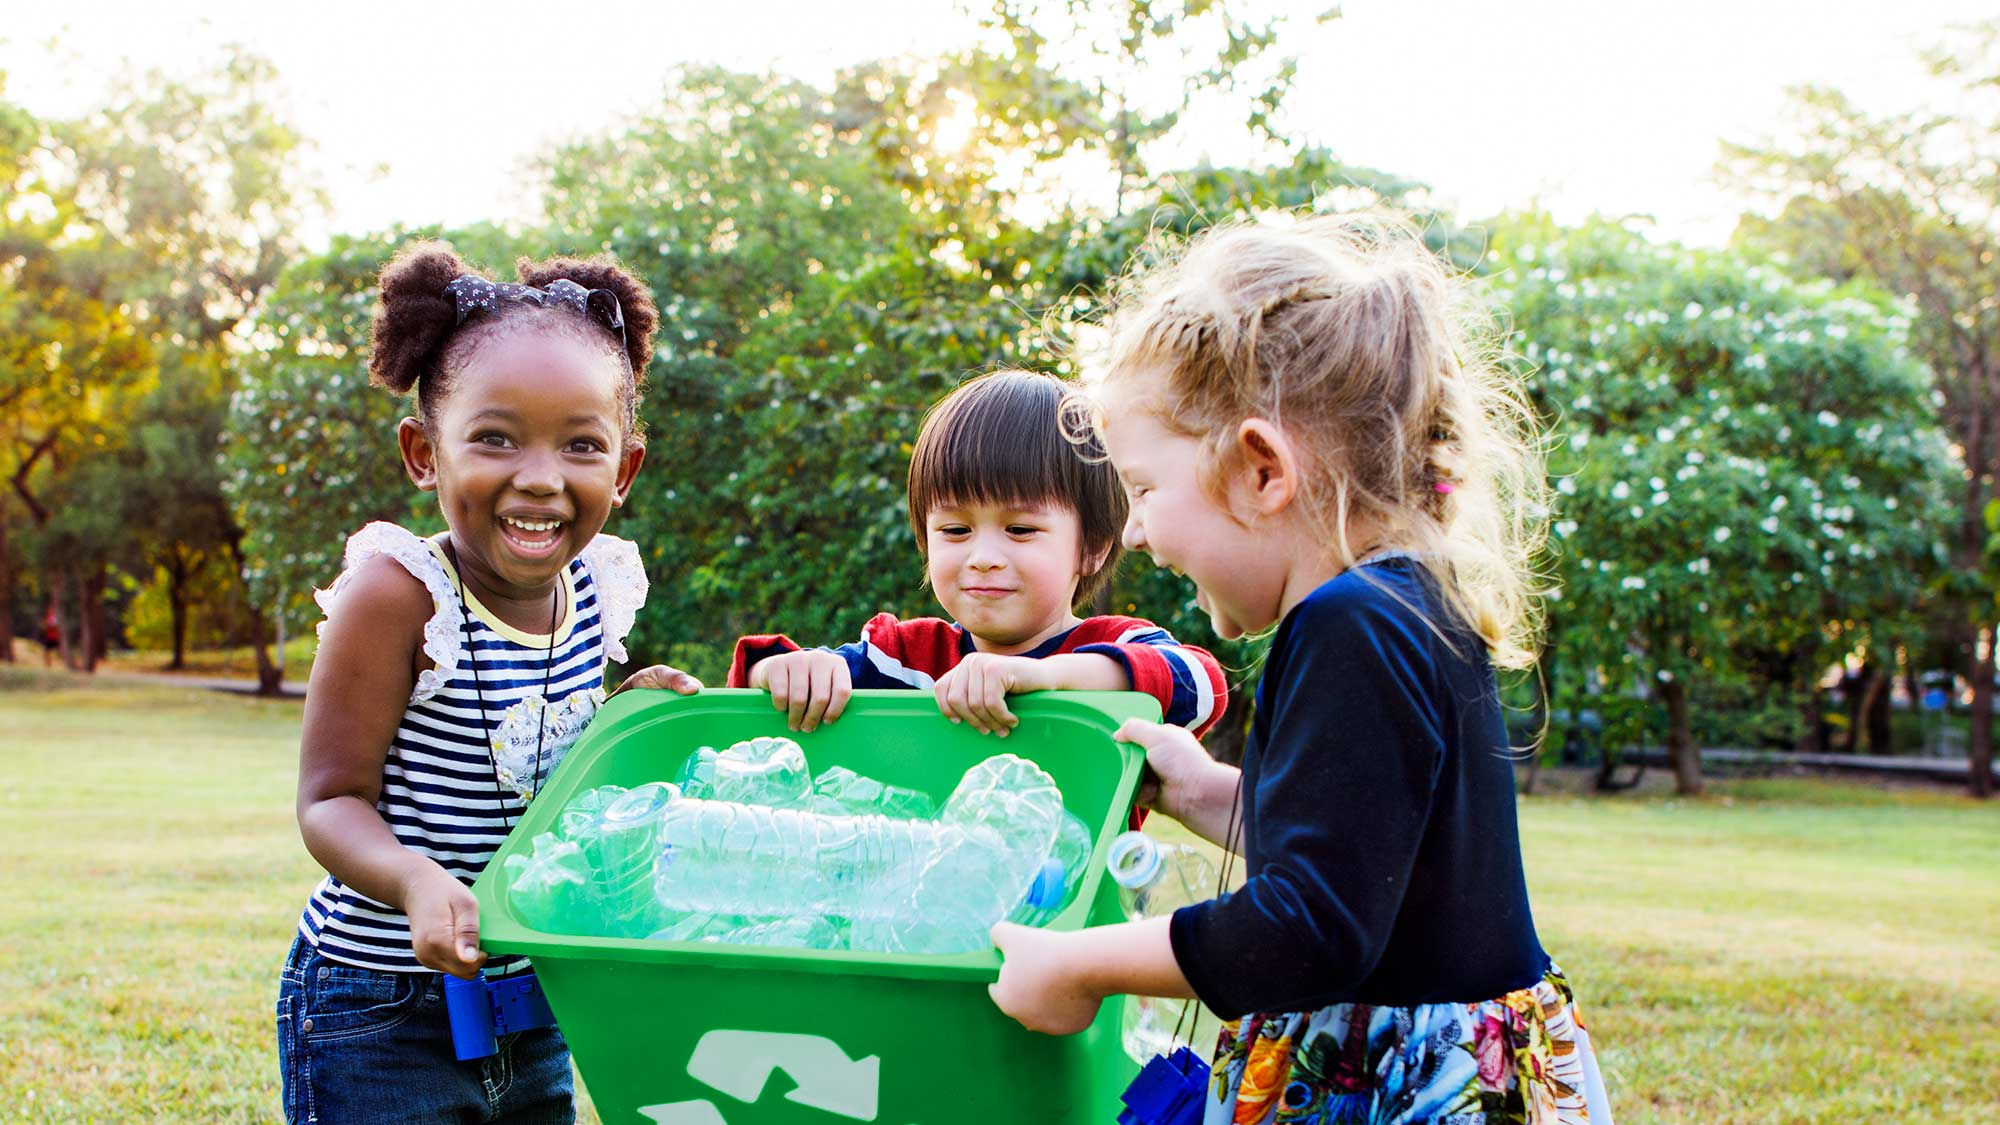 Children gathering recyclables in a green bin.